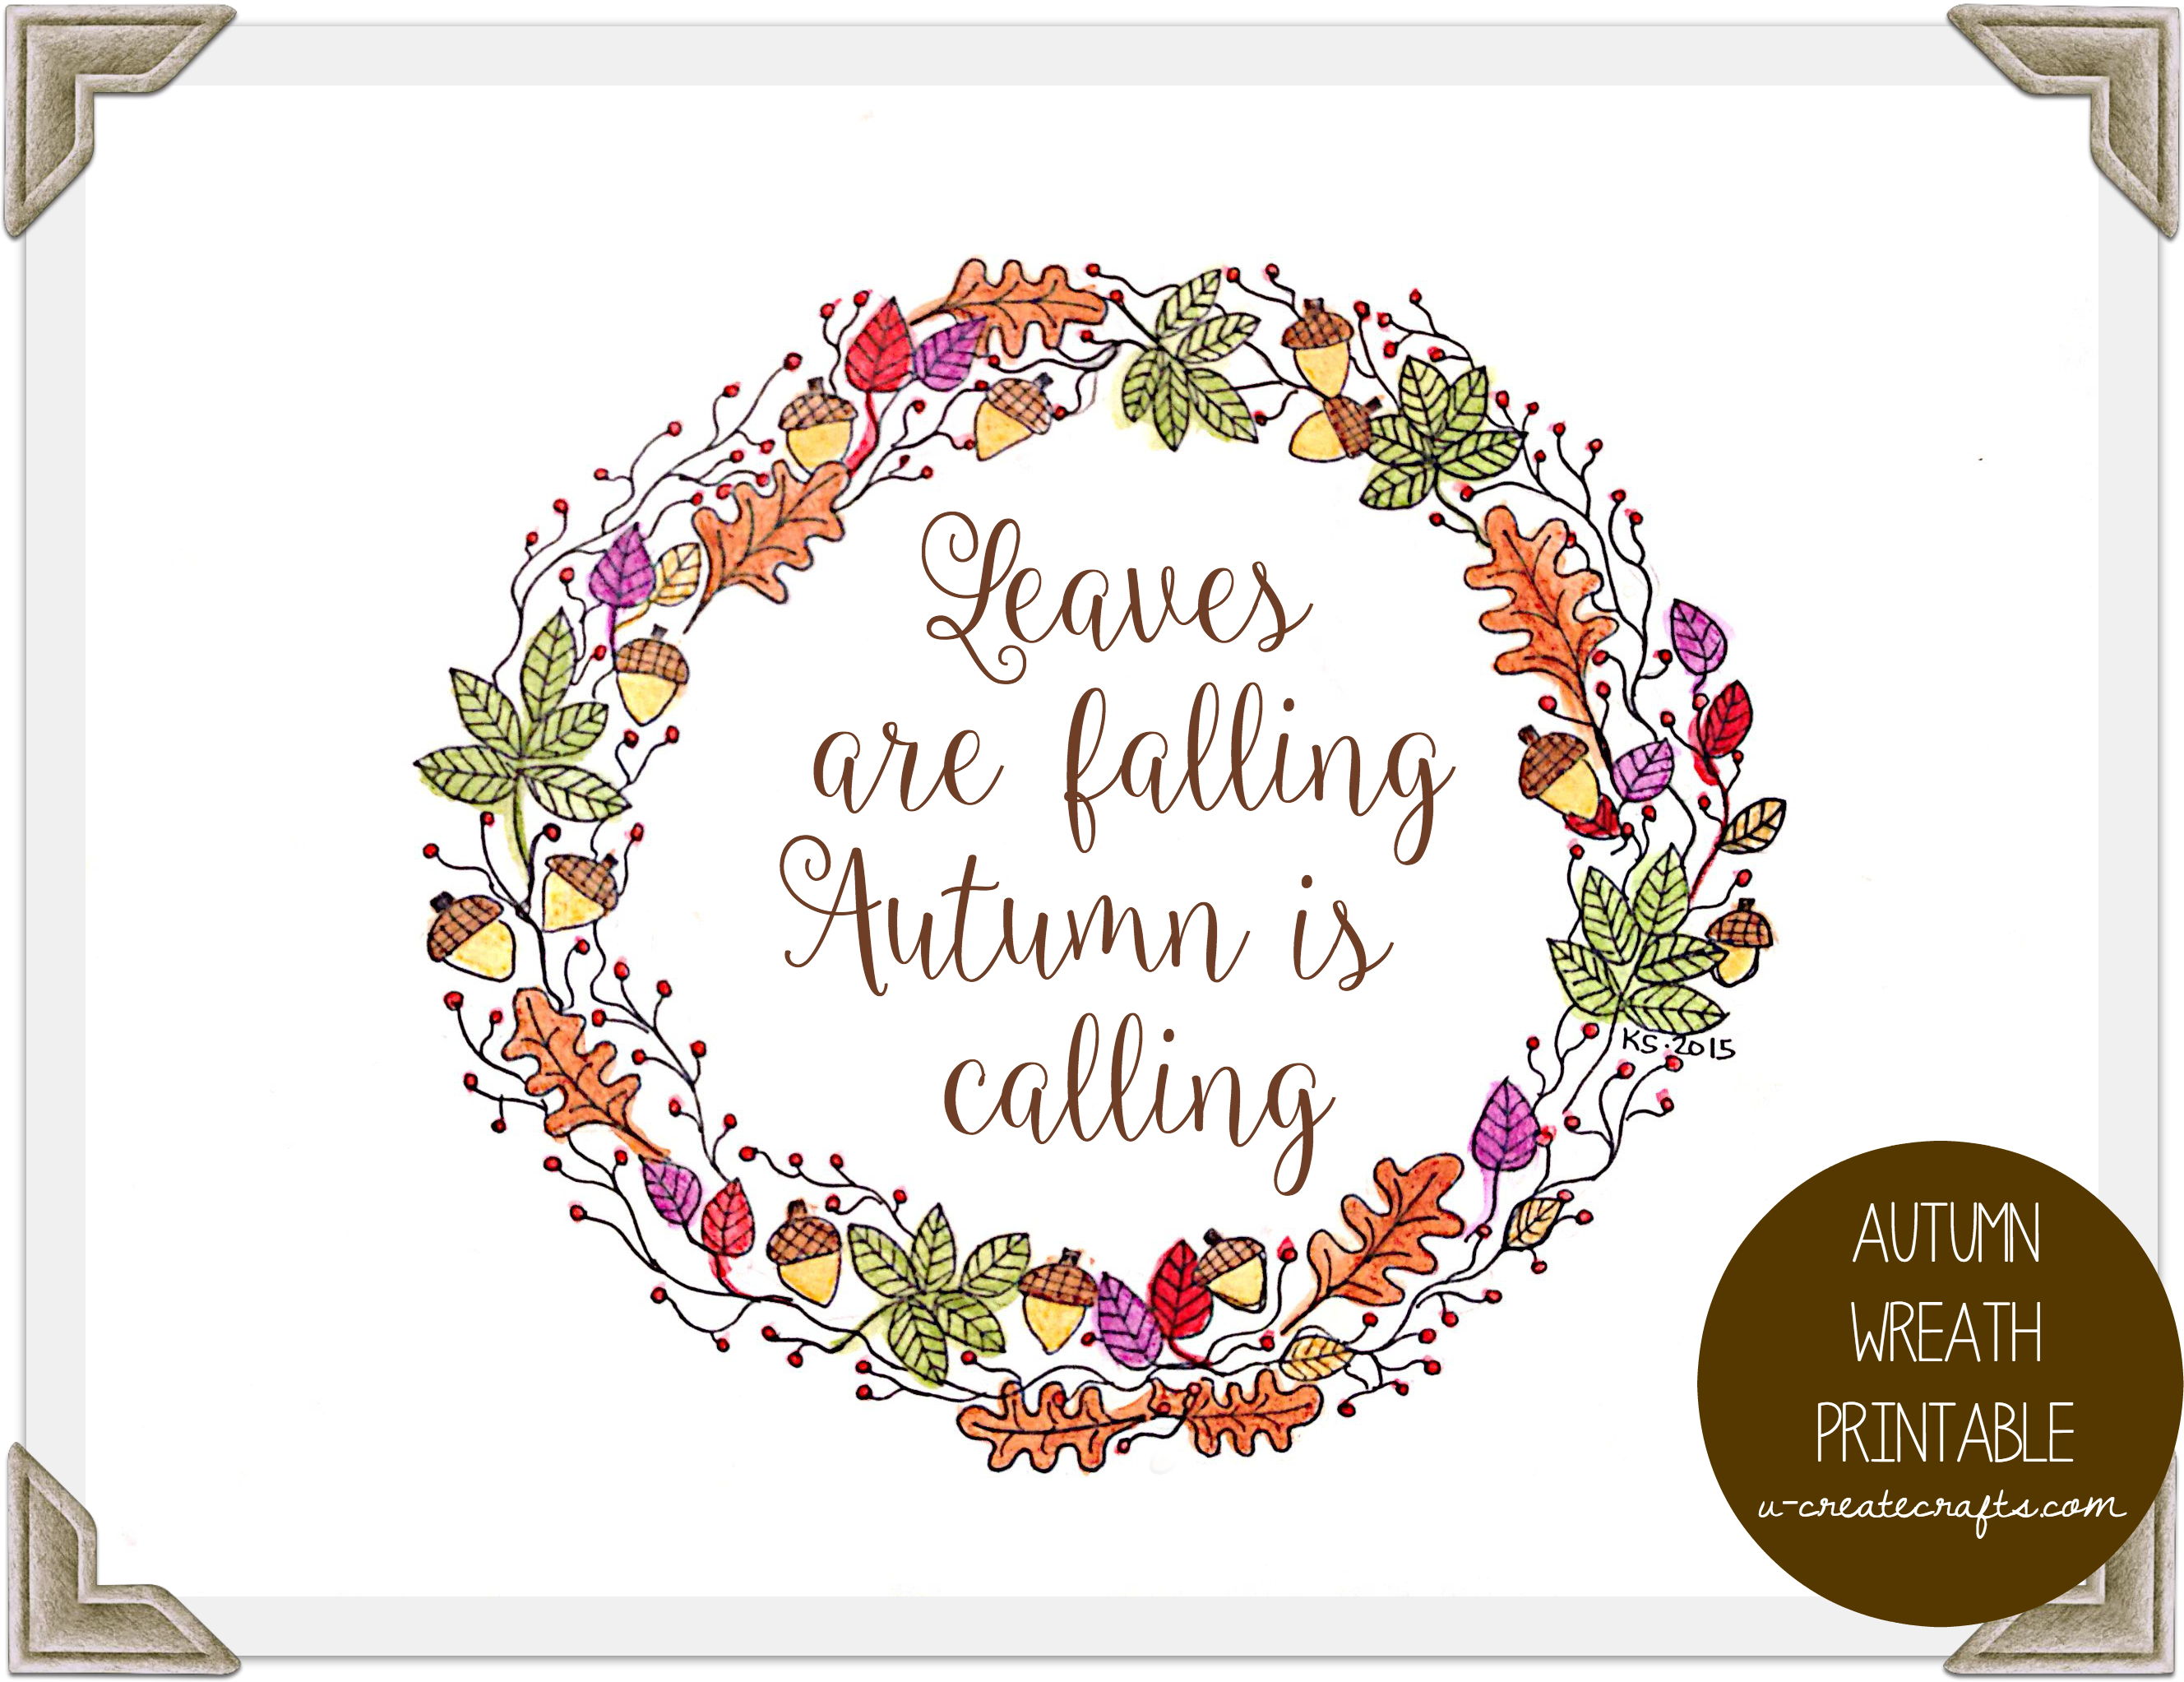 image regarding Autumn Printable identified as Autumn Wreath Cost-free Printable